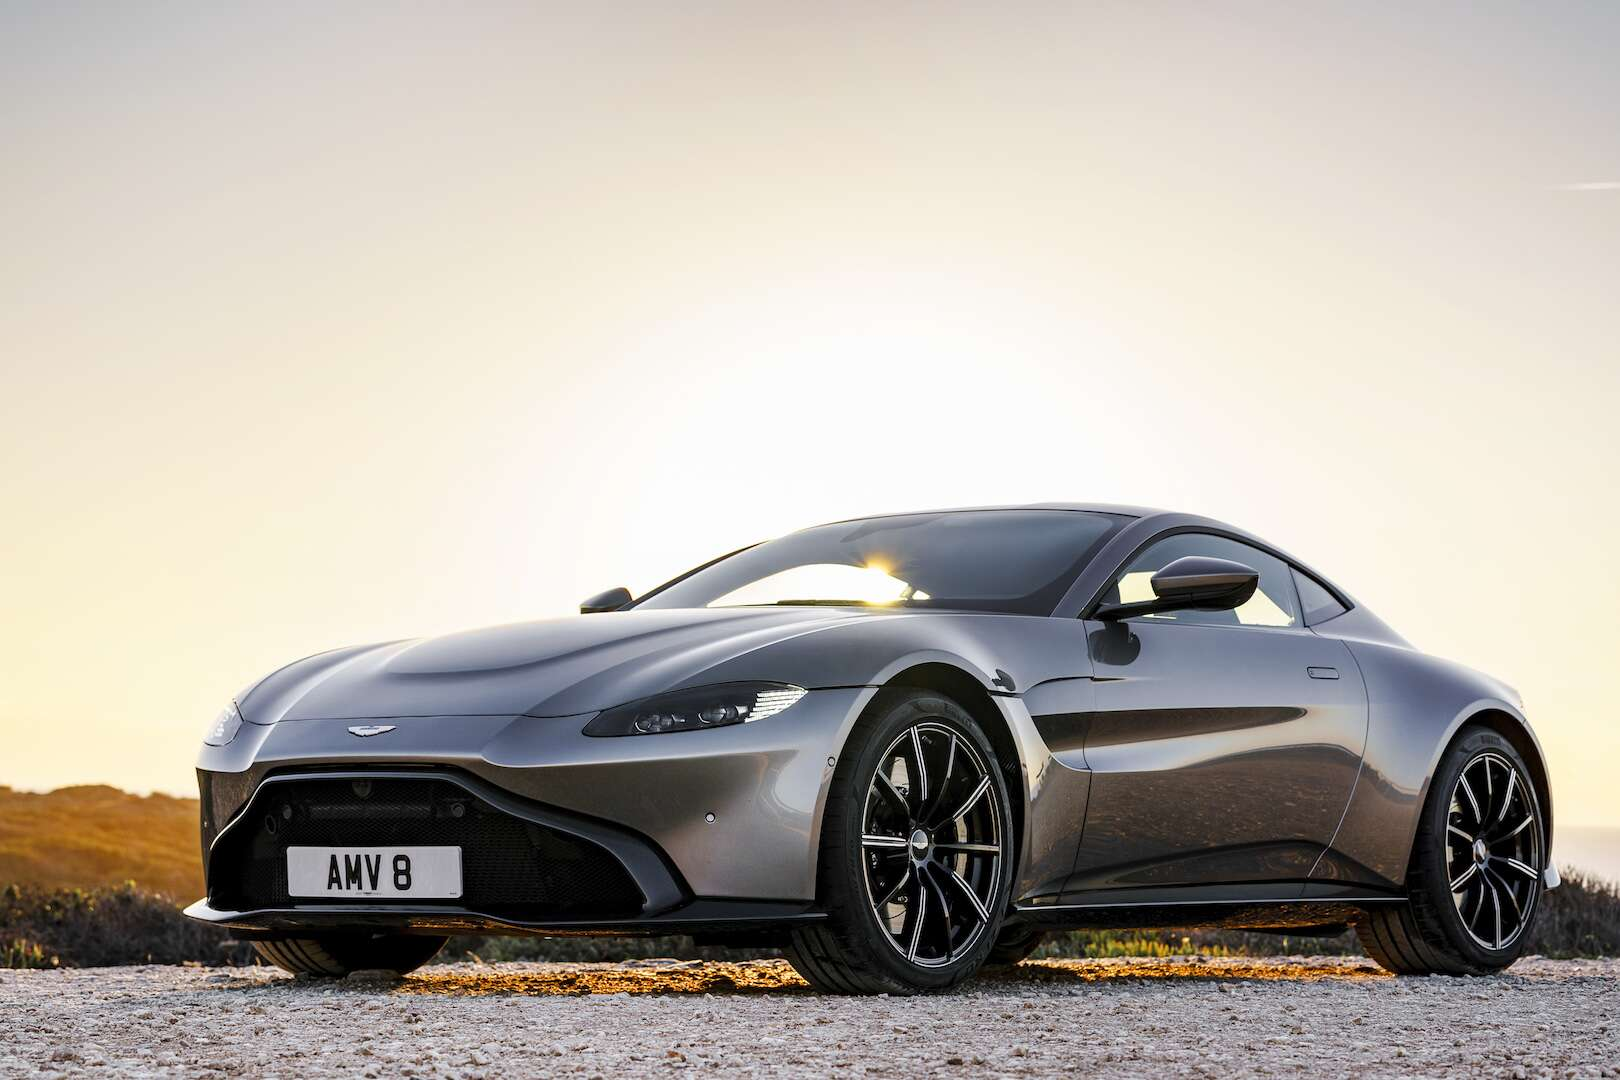 new aston martin vantage borrows v-8 sugar from mercedes-amg gt